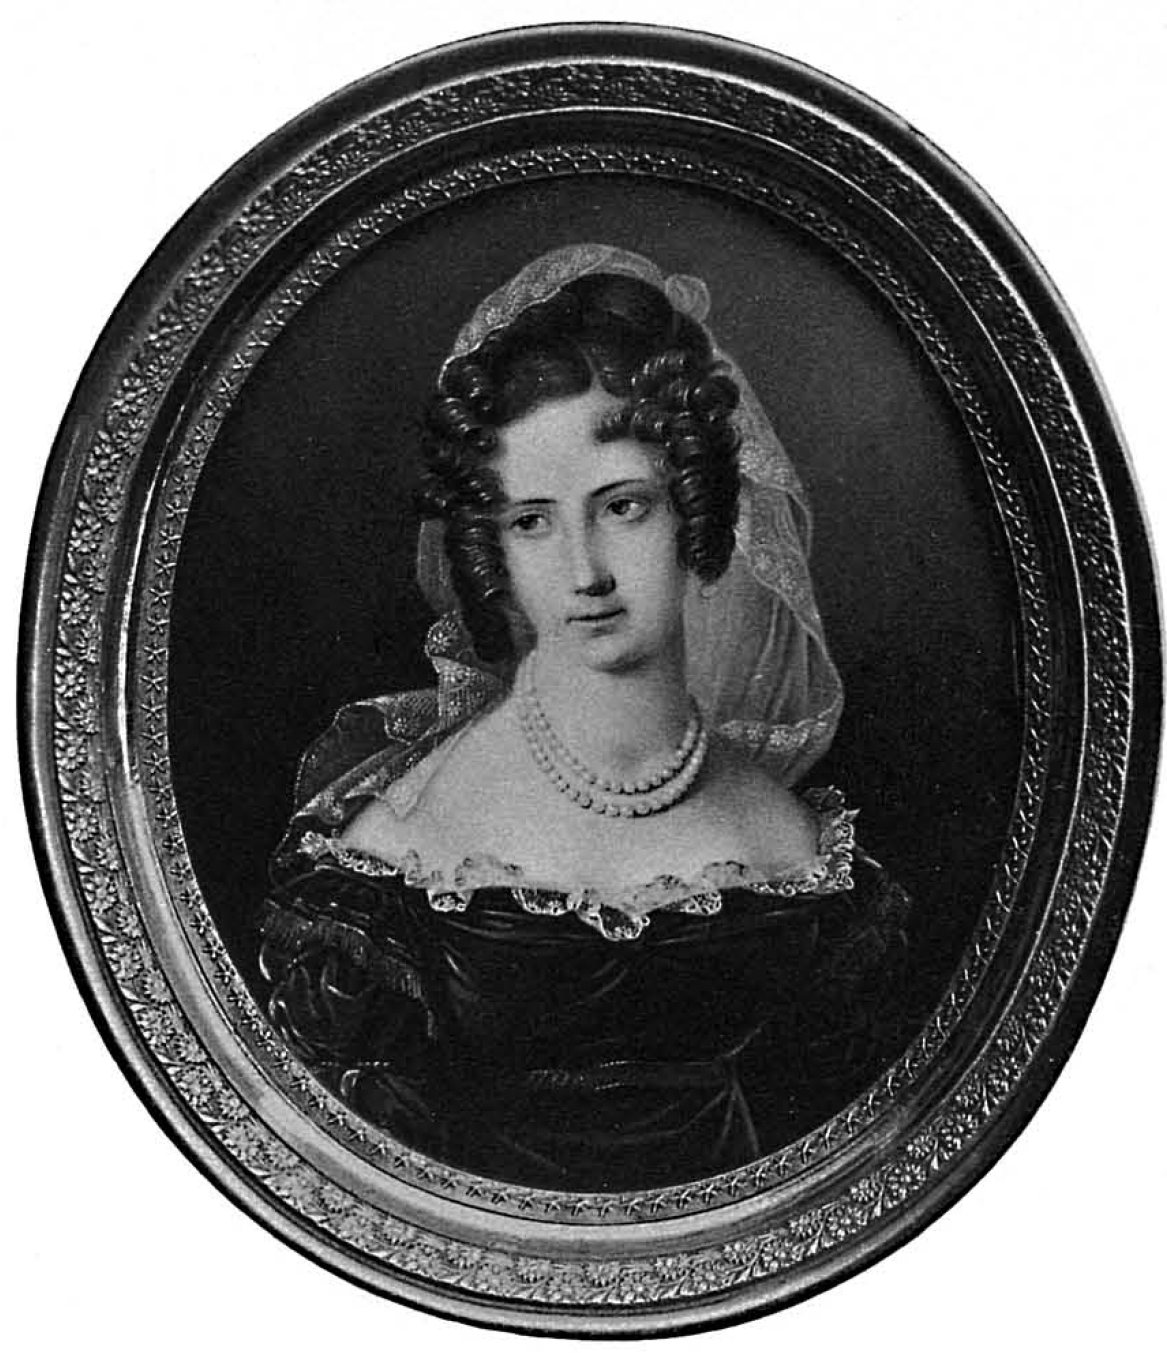 https://upload.wikimedia.org/wikipedia/commons/1/17/RusPortraits_v2-060_Elisabeth_Alexandrowna_Tchernycheff.jpg